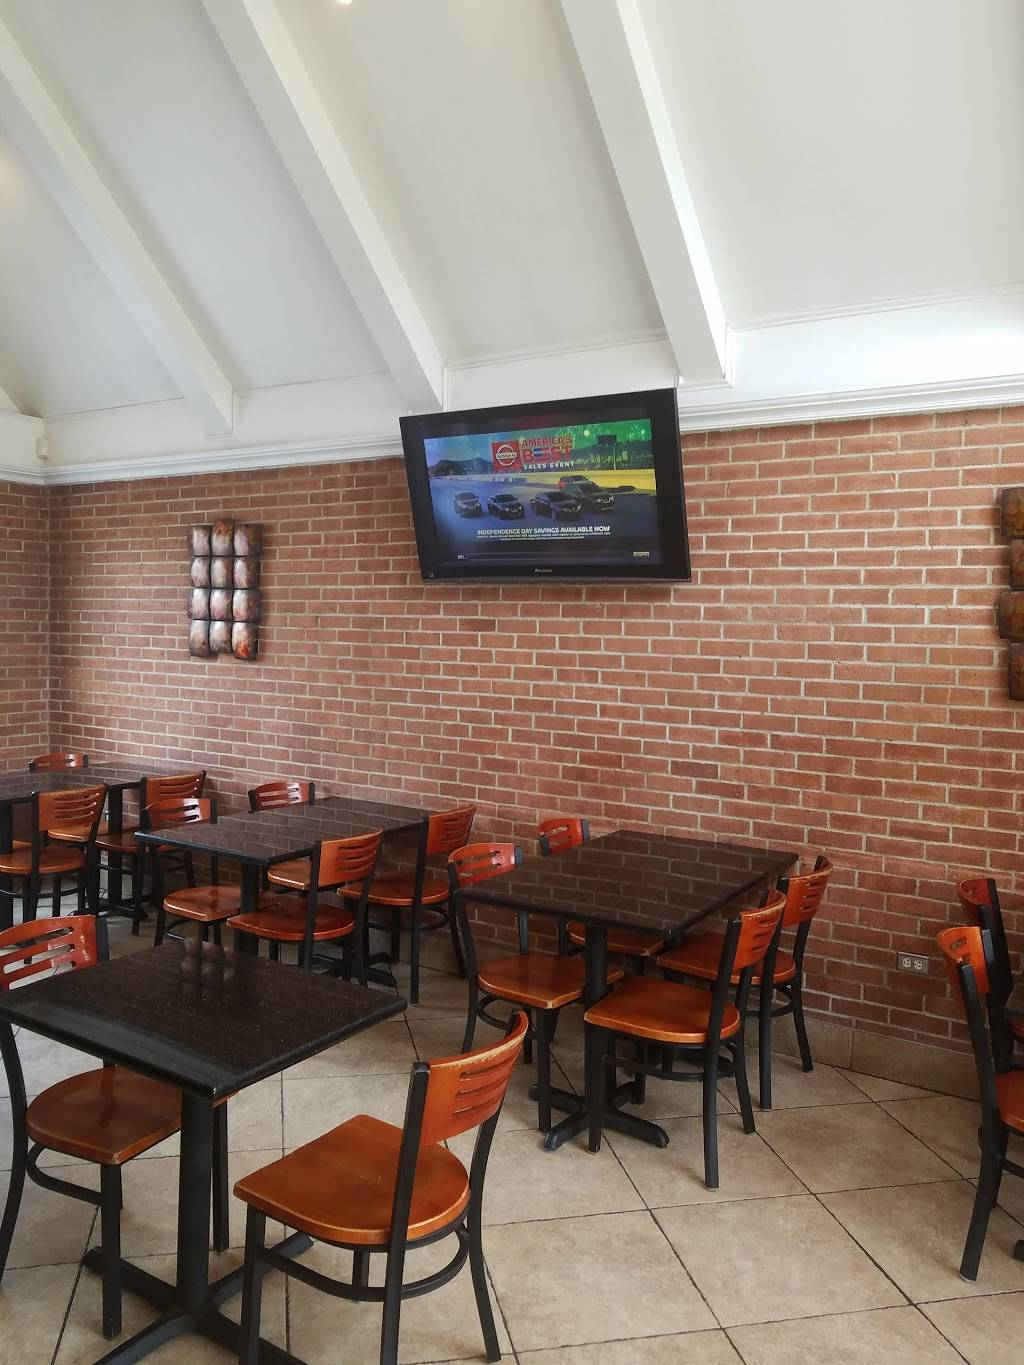 Angelinas Pizza | restaurant | 41 Prospect Ave, Hartford, CT 06106, USA | 8602324080 OR +1 860-232-4080